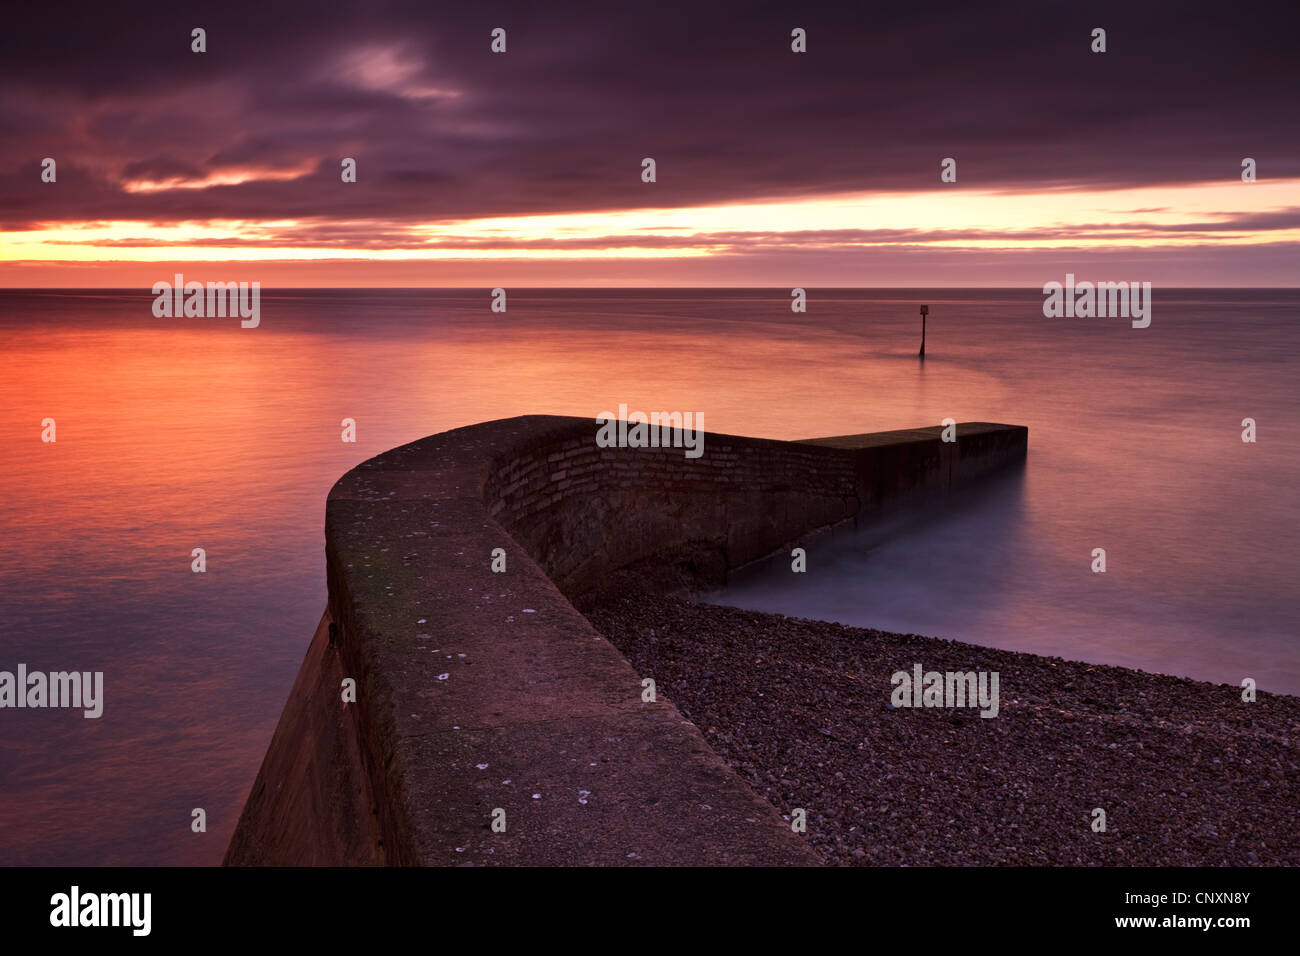 Stone jetty on Sidmouth beachfront at sunrise, Sidmouth, Devon, England. Winter (January) 2012. - Stock Image